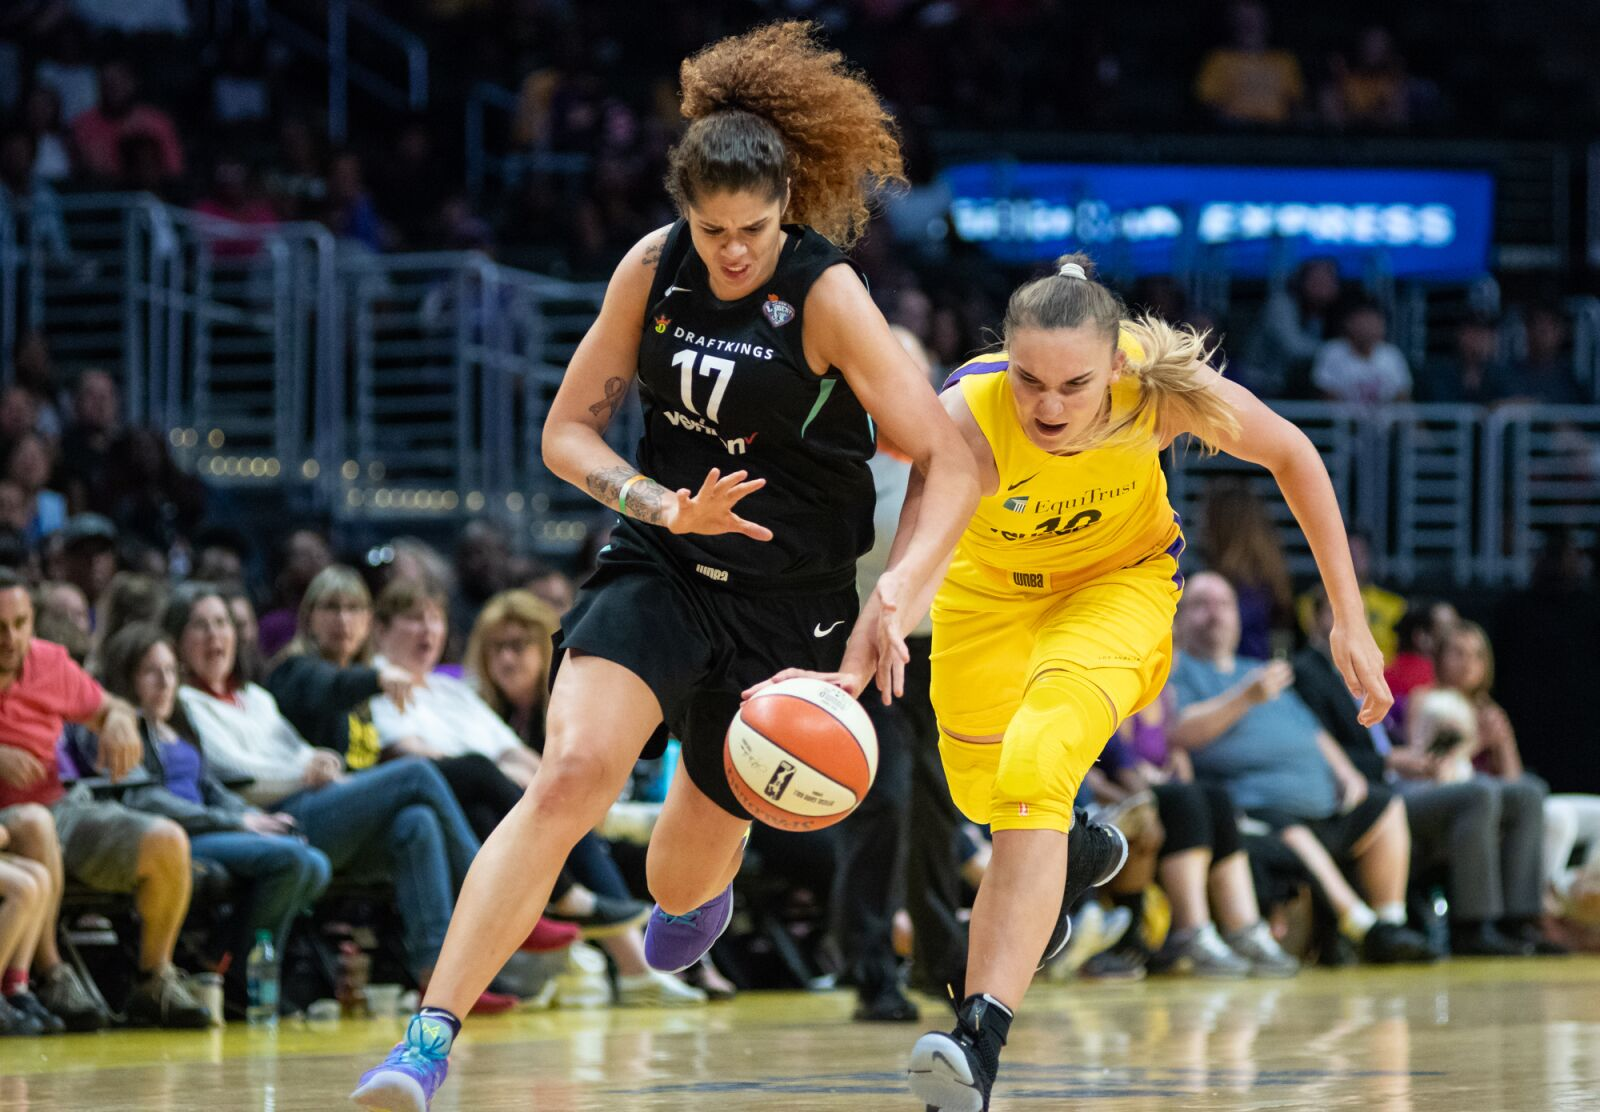 WNBA news: Things to know about EuroBasket, Part 1: Who's going